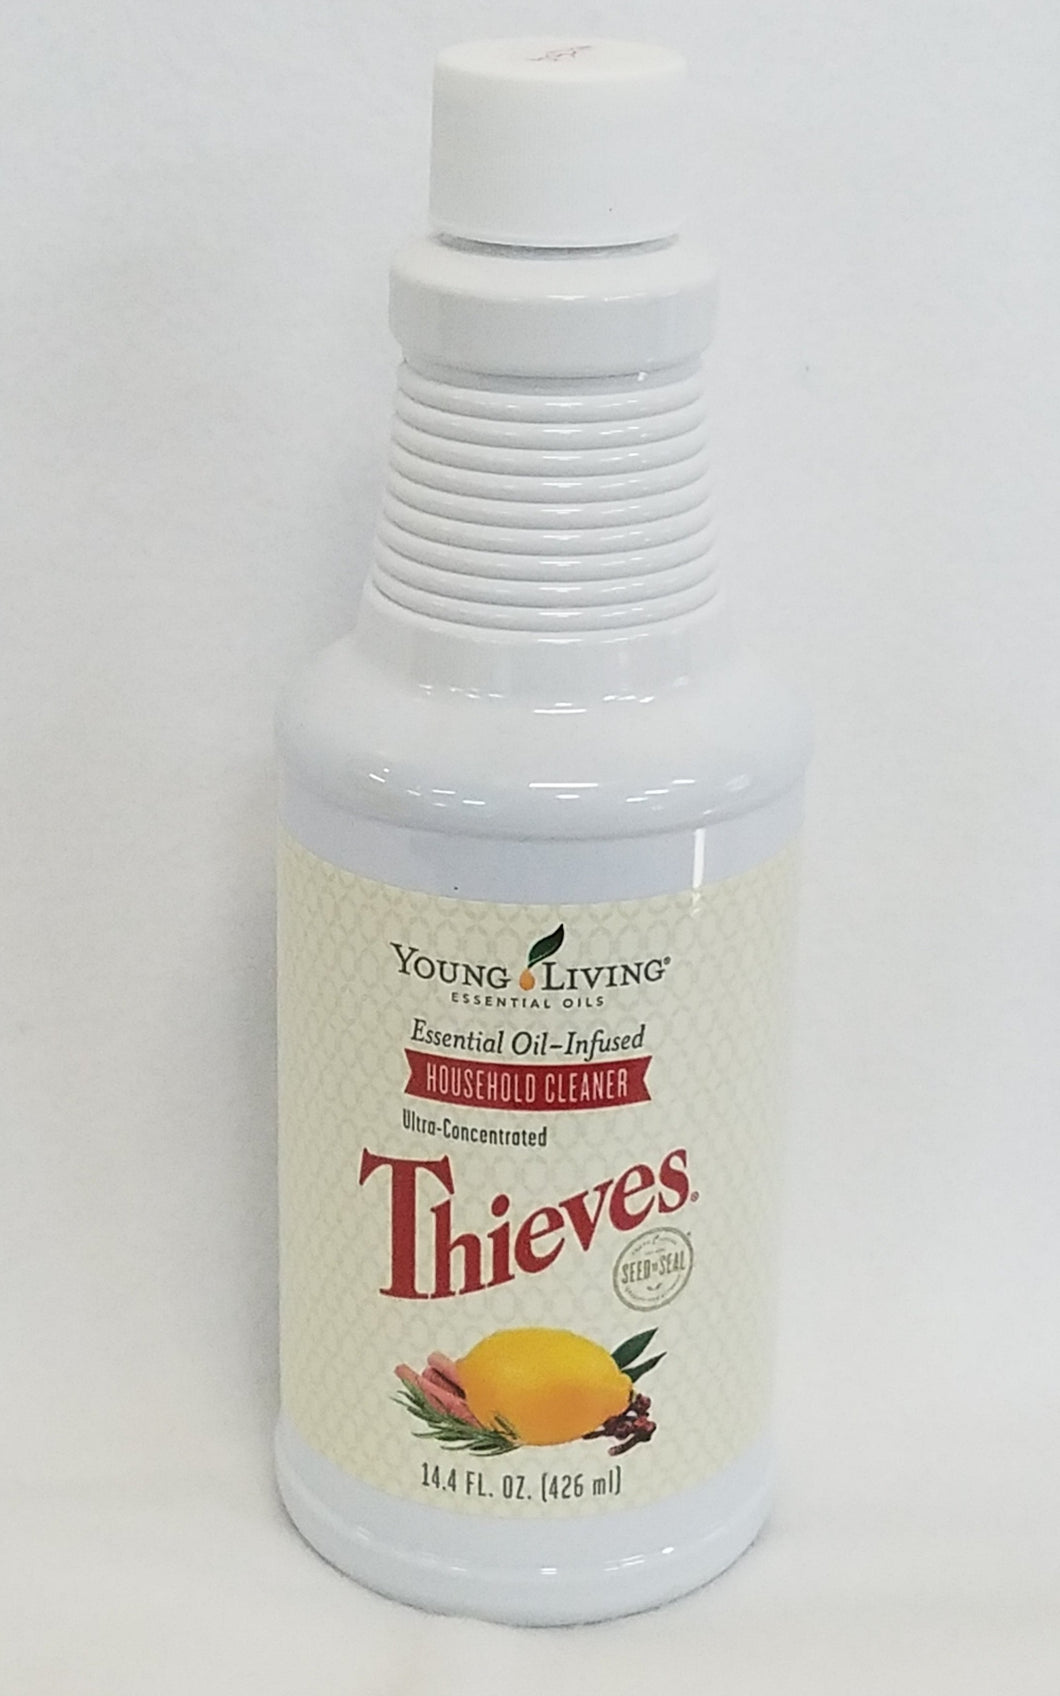 YL Thieves Household Cleaner